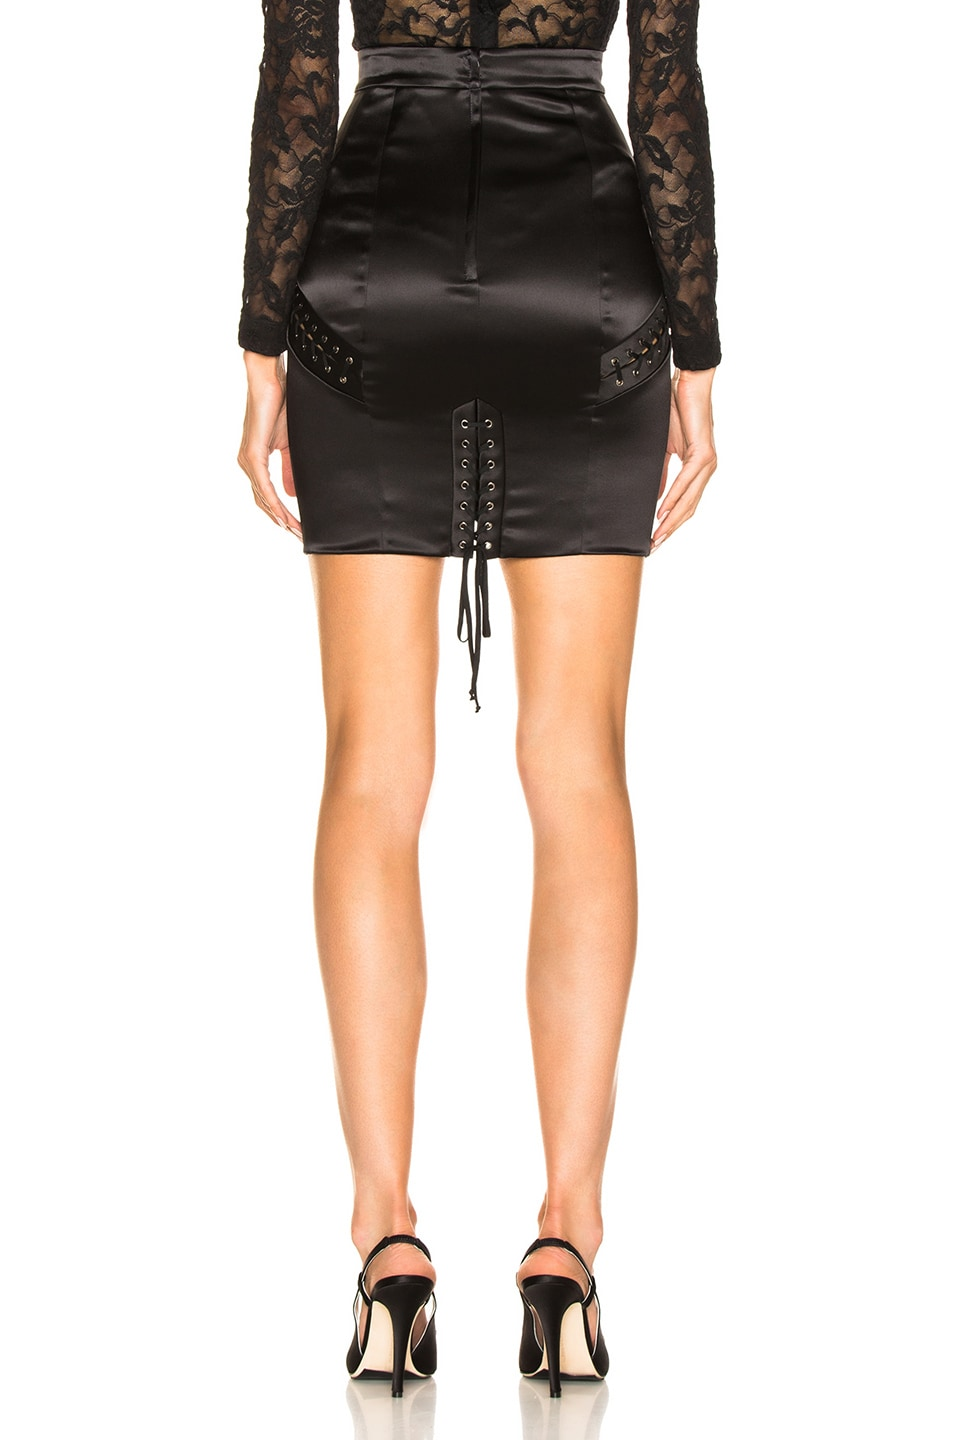 Image 3 of Dolce & Gabbana Lace Up Satin Skirt in Black